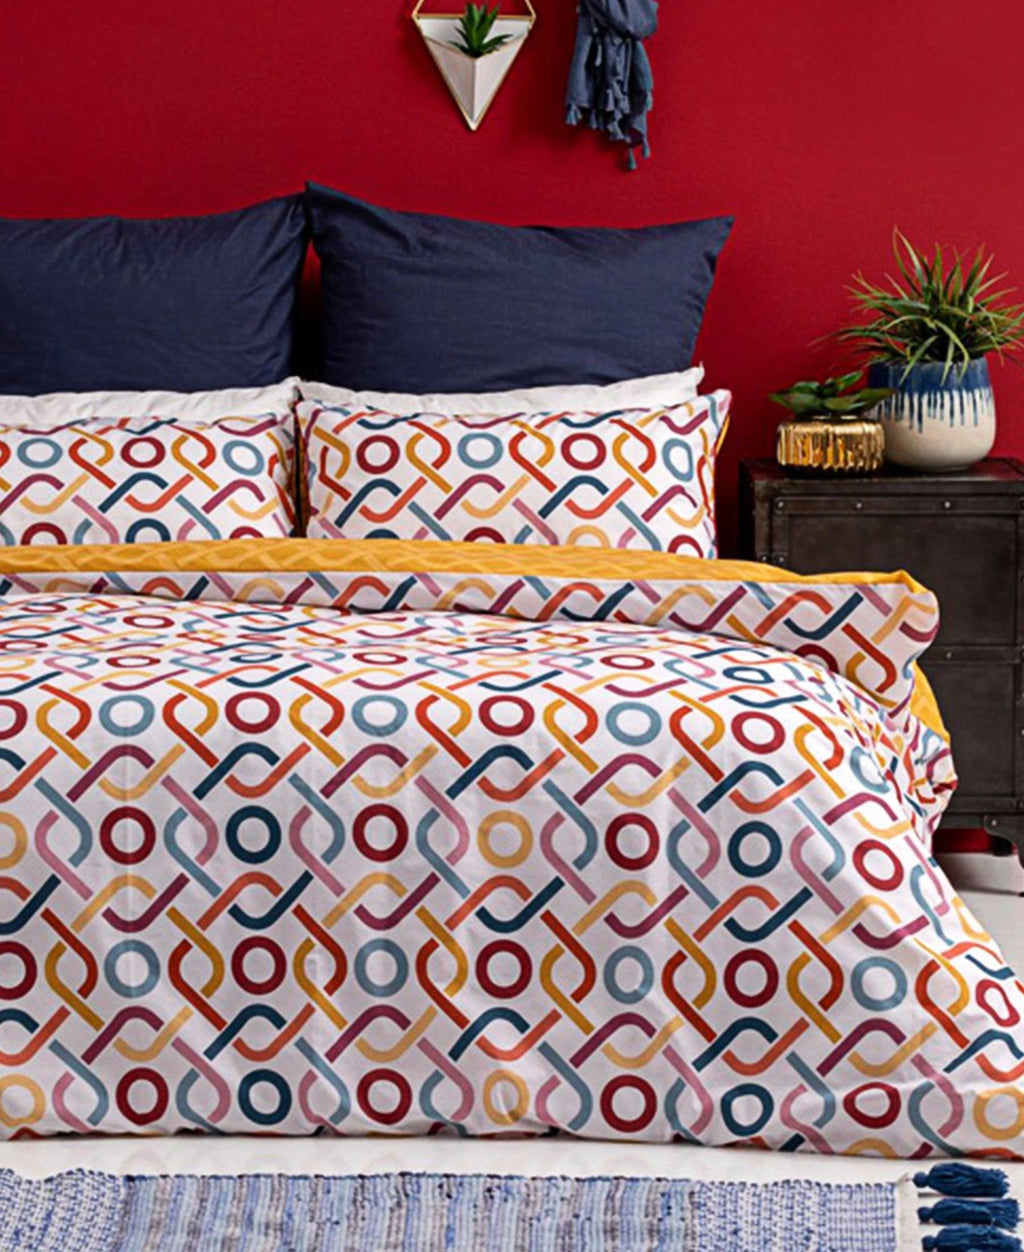 Horrockses 180 Thread Count Polycotton Duvet Cover - Lennyx Top